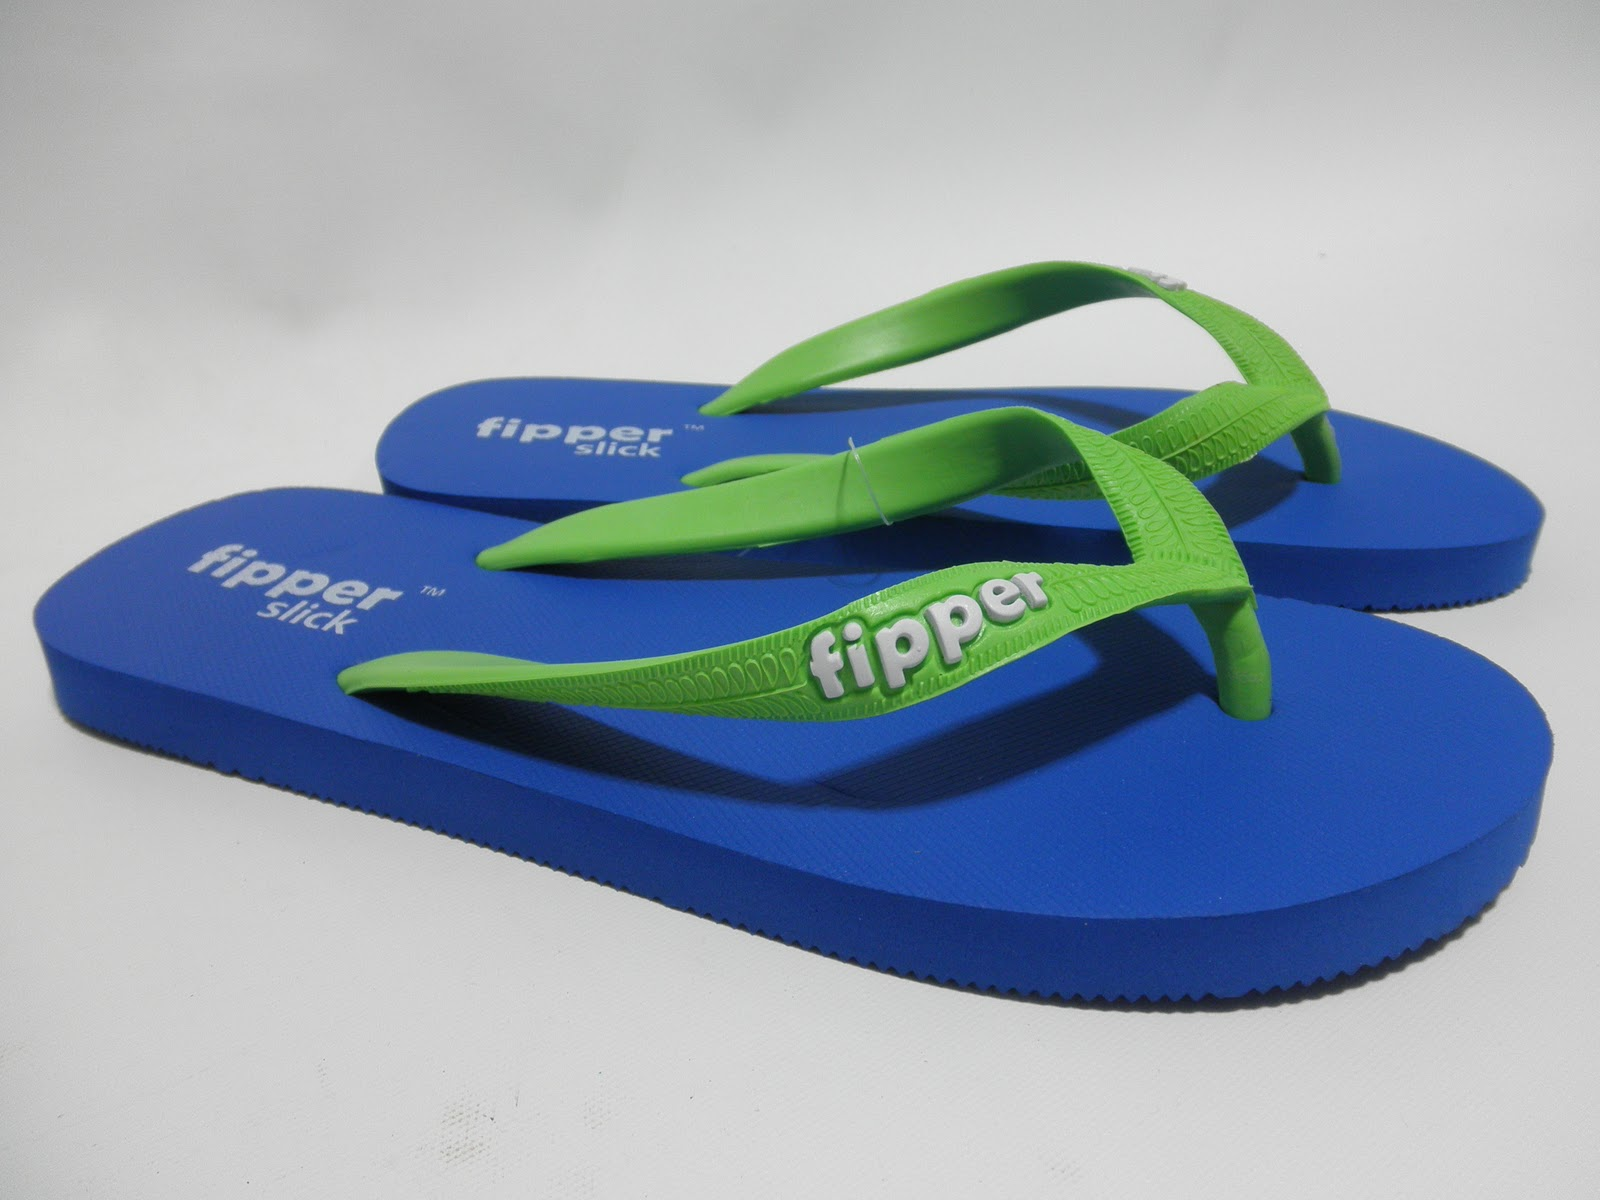 Fipper Slick Blue-Apple Green Slipper